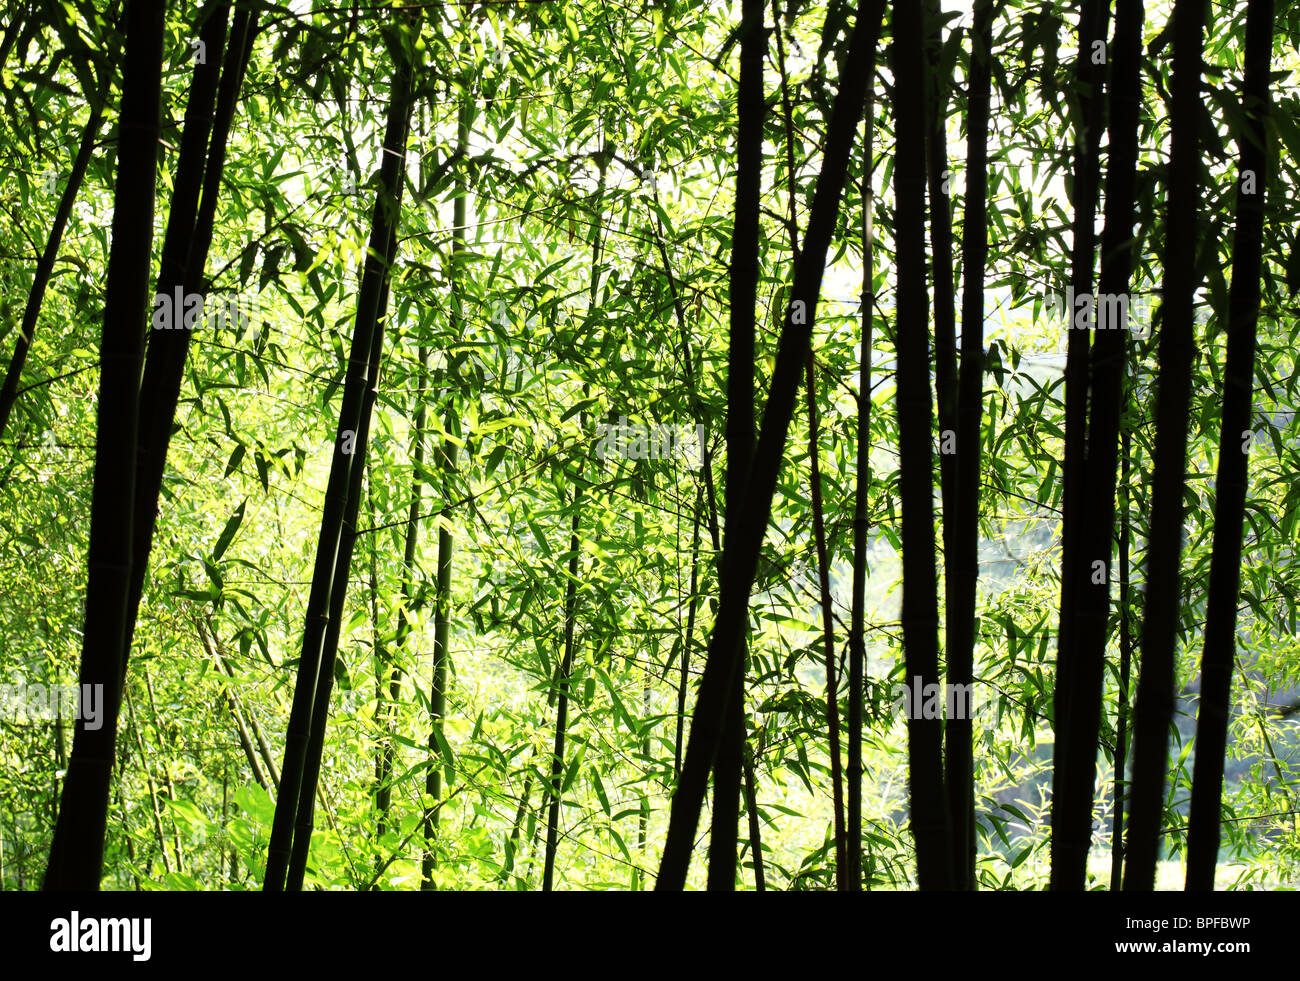 Bright bamboo forest in sunlight - Stock Image